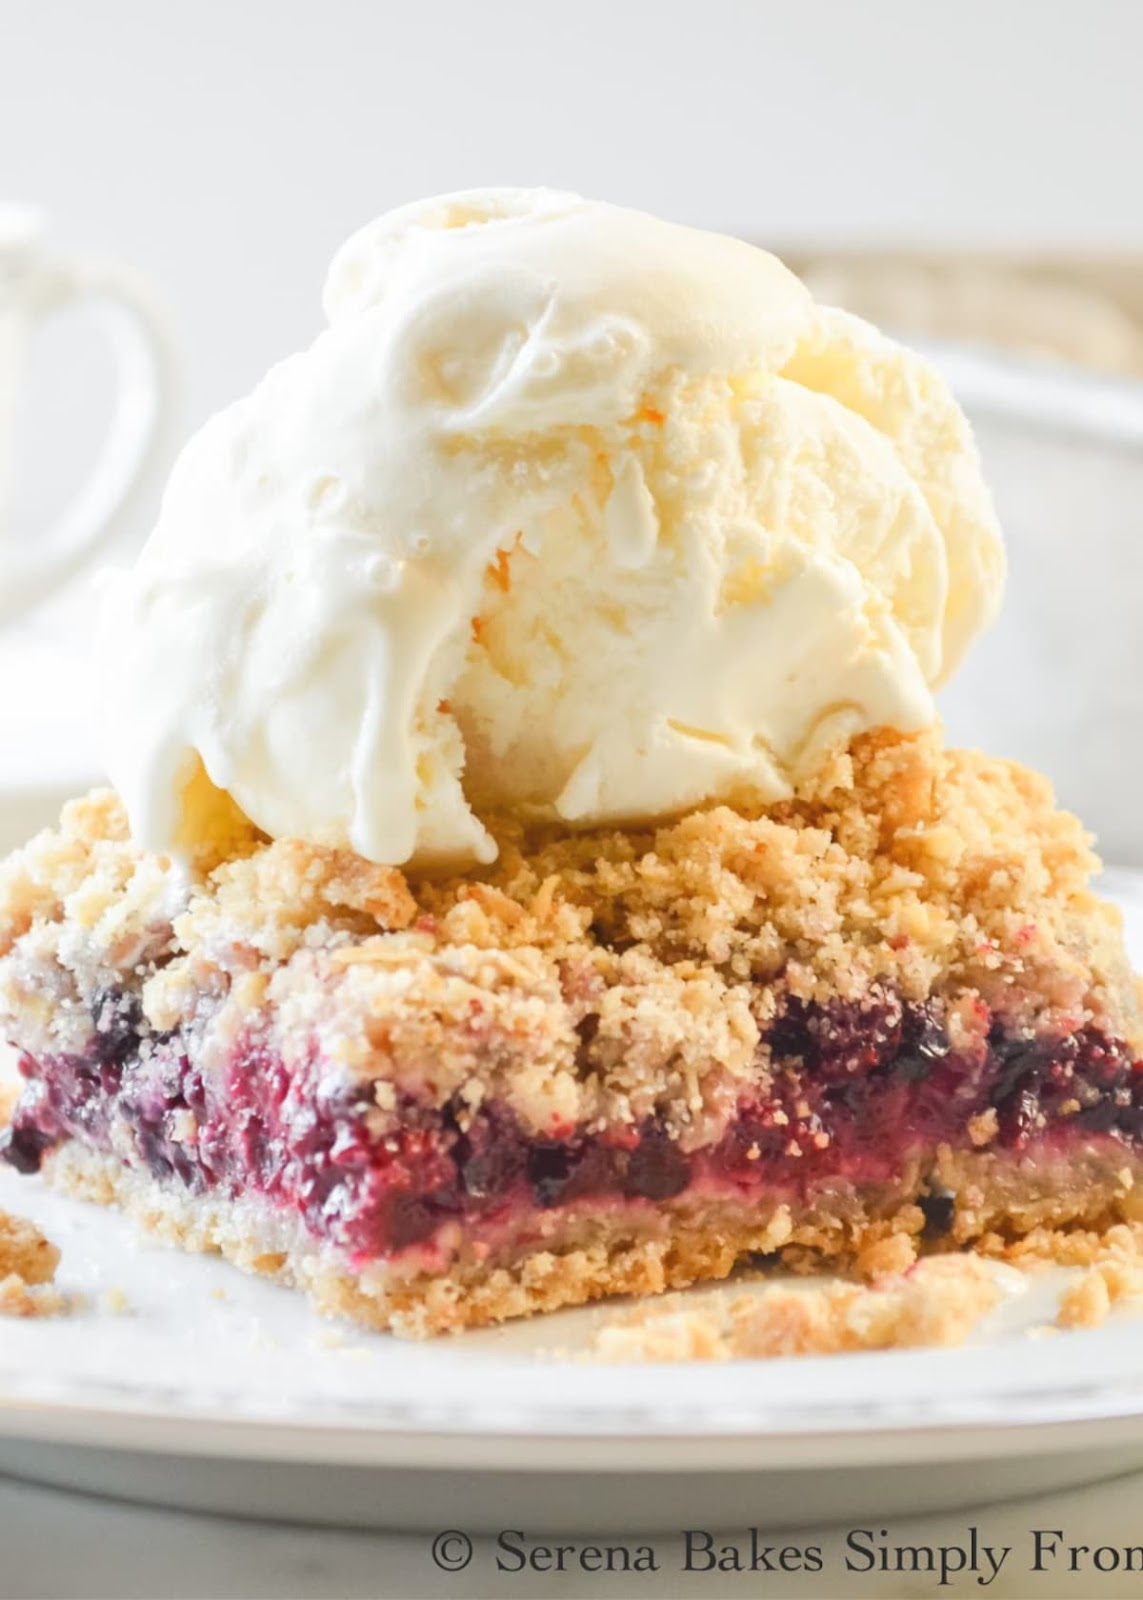 Blackberry Crumb Bars are an east to make dessert recipe and a guaranteed hit from Serena Bakes Simply From Scratch.